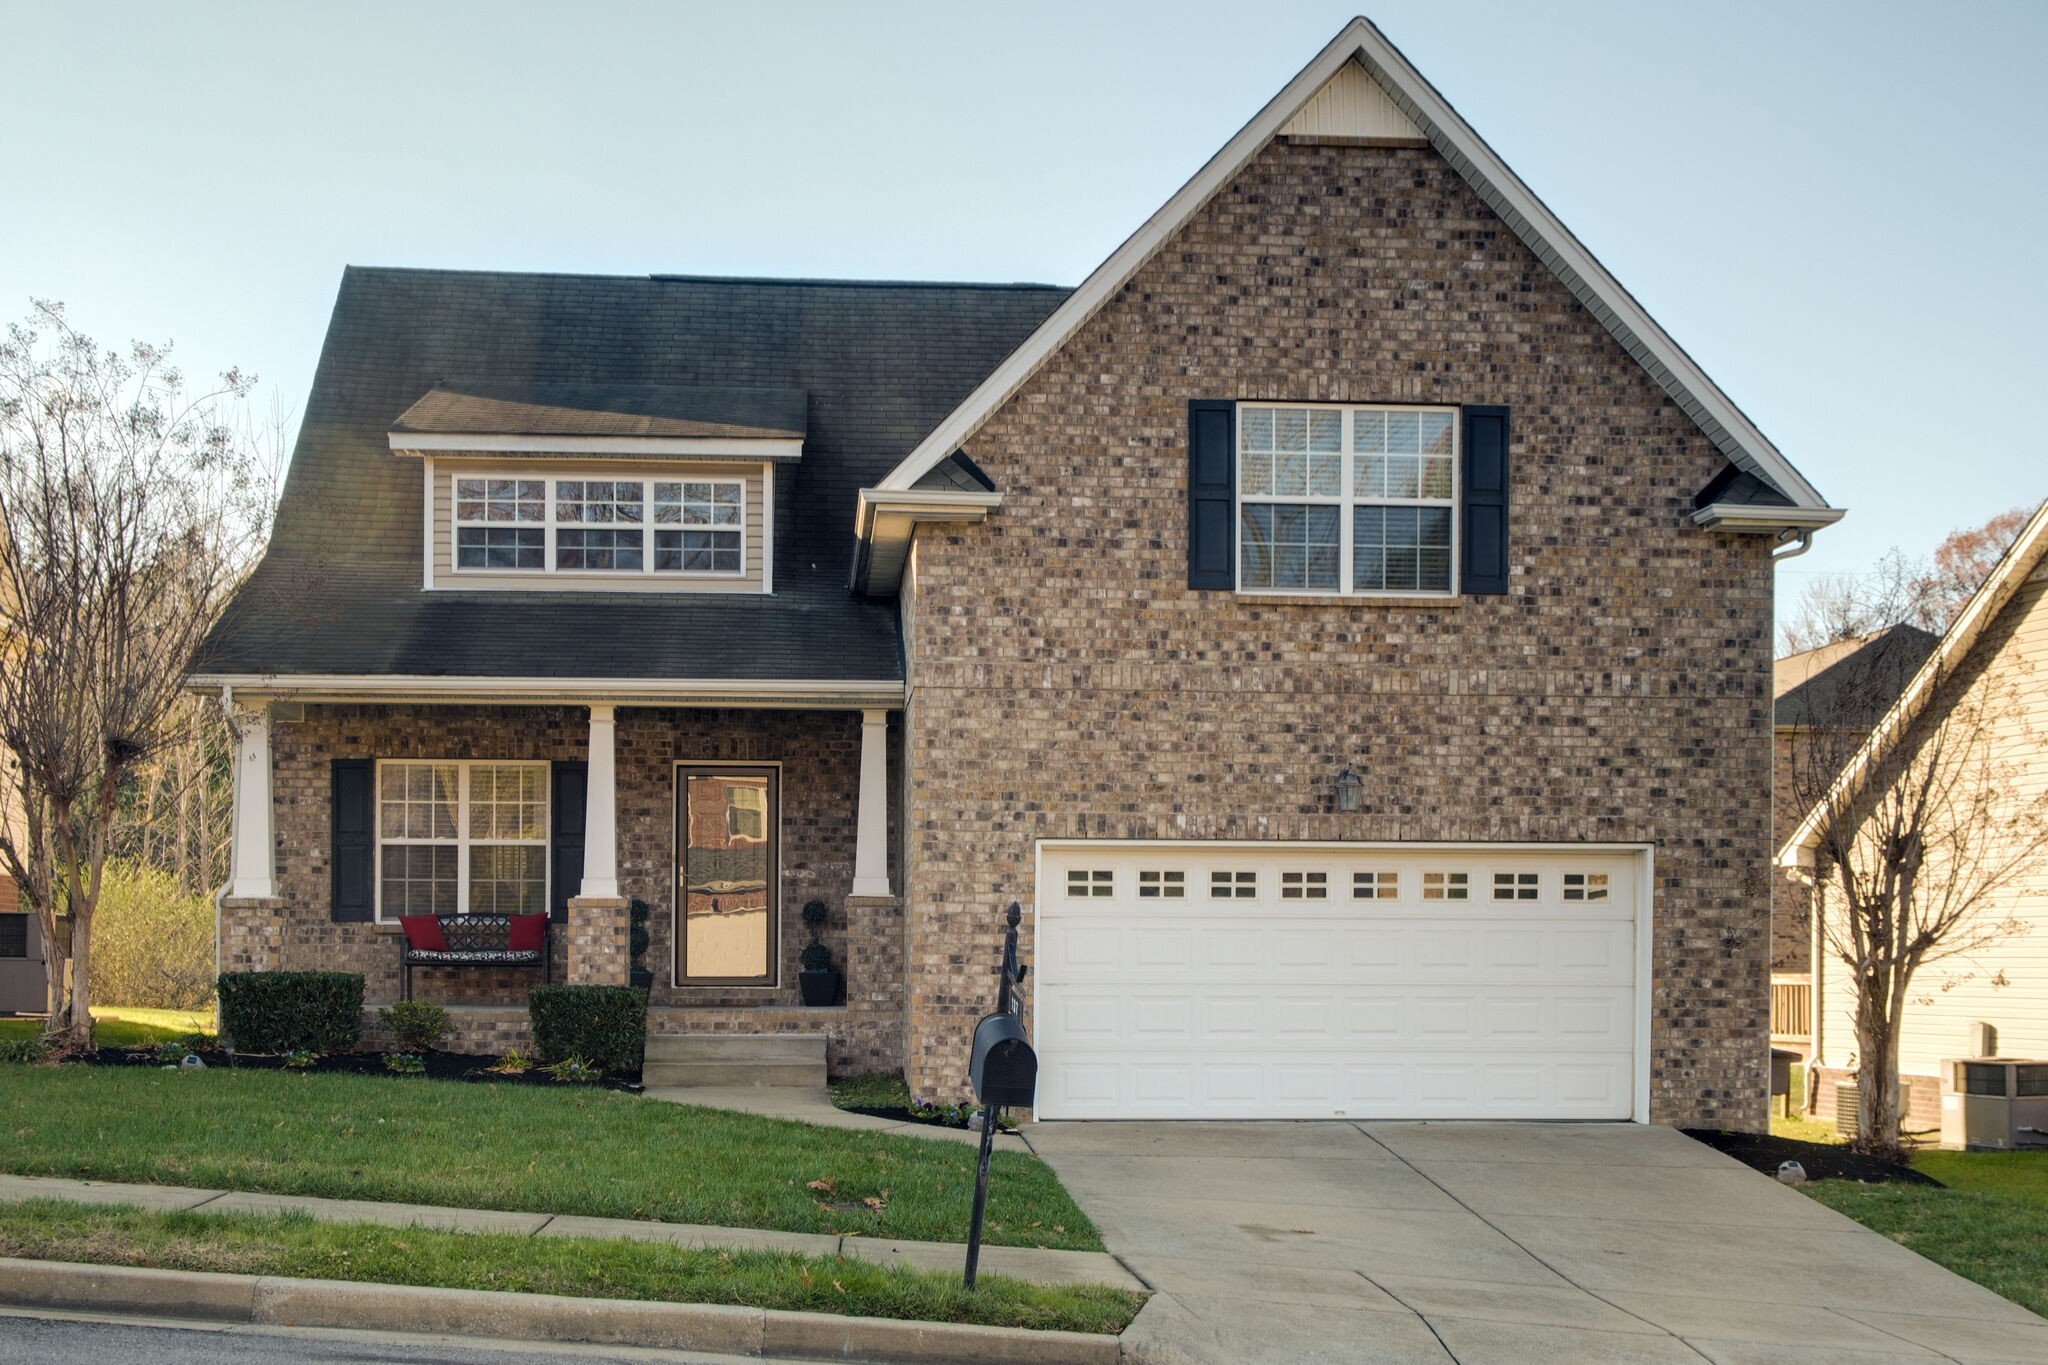 137 Took Dr Property Photo - Antioch, TN real estate listing